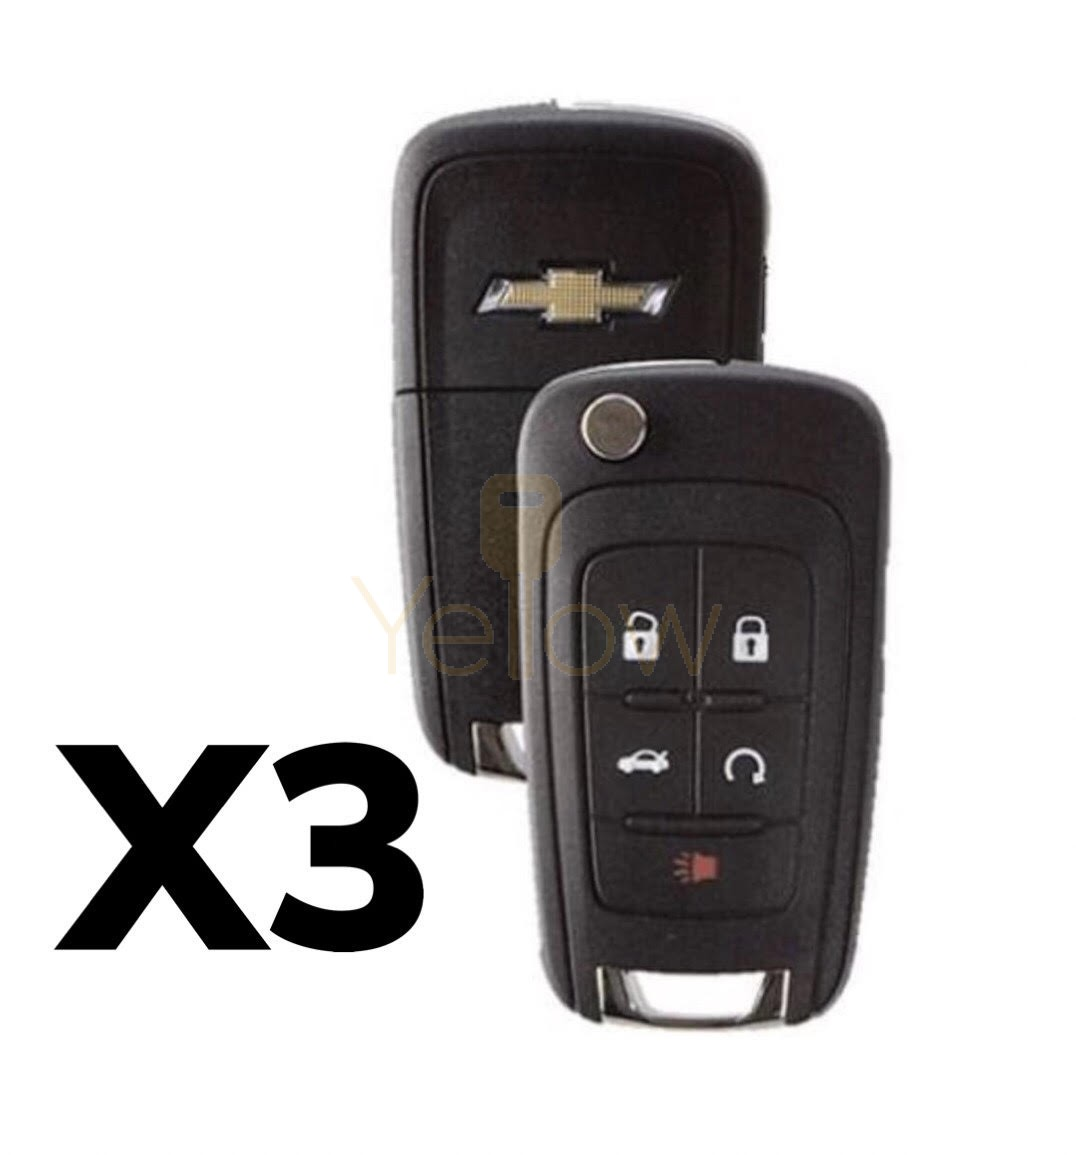 (3 PACK) 5 BUTTON CHEVROLET FLIP KEY - PN 13504199